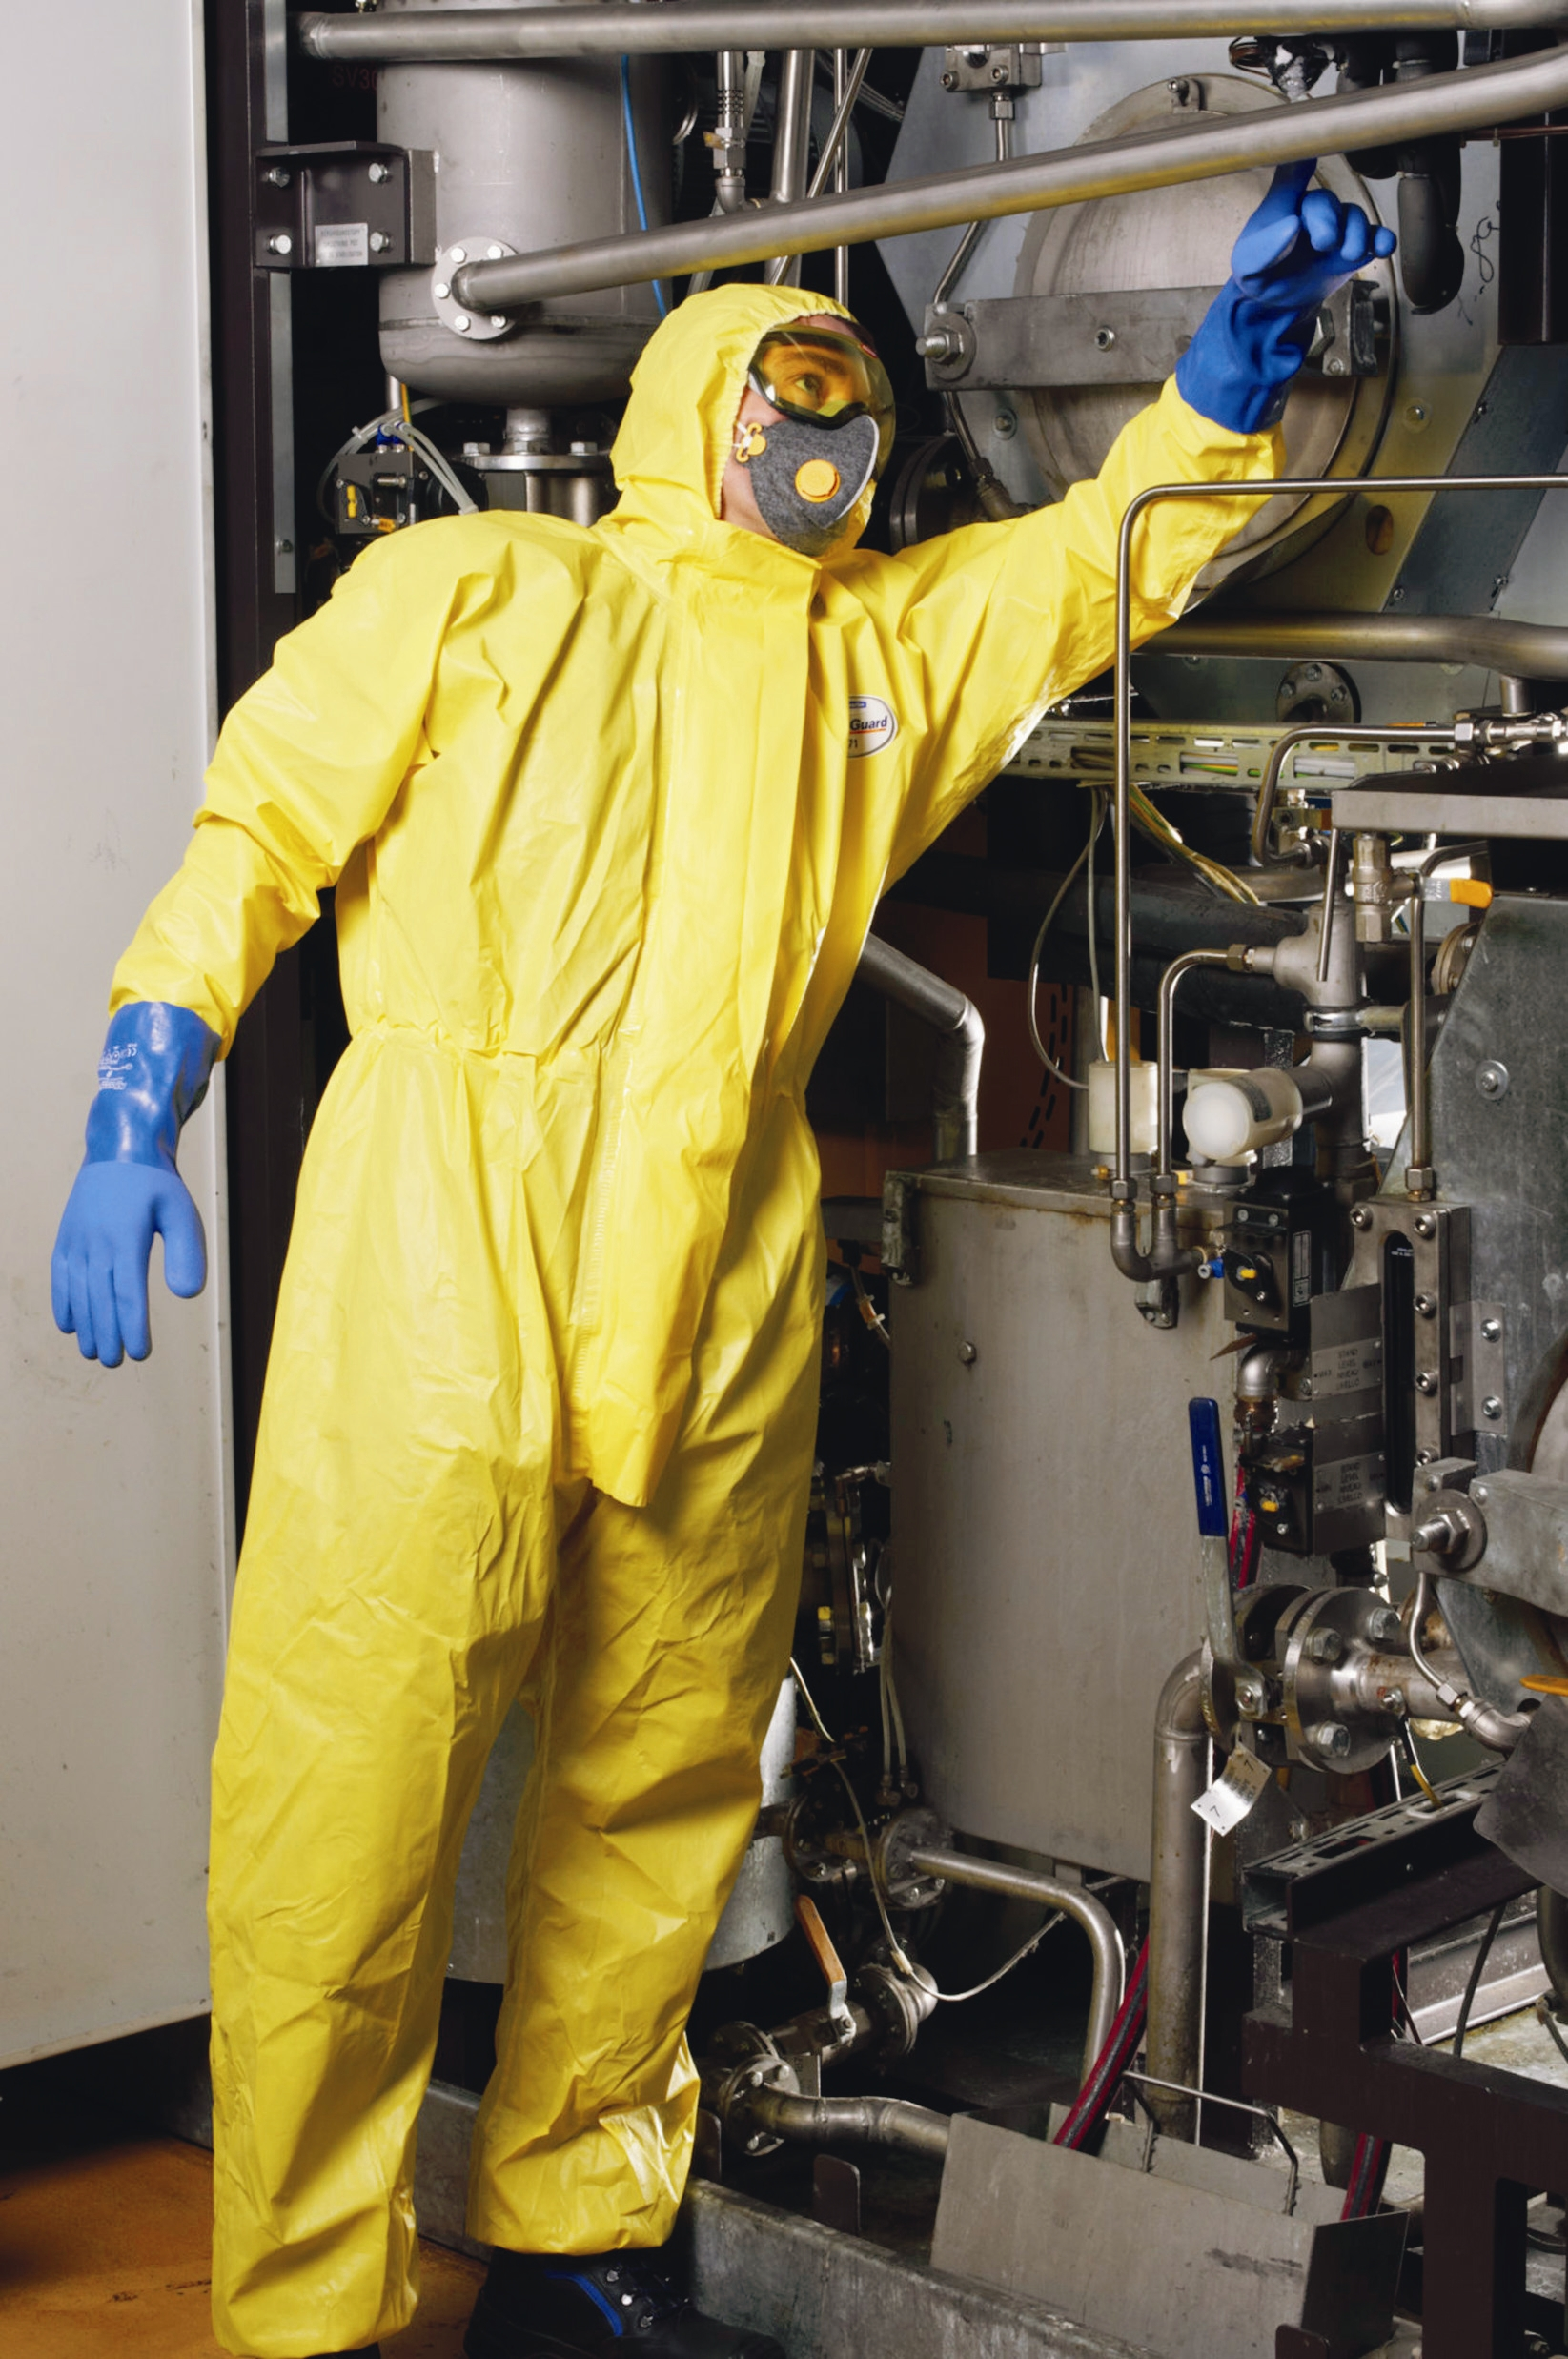 Kleenguard A71 Coverall Yellow 2XLarge -  44/150489 96790